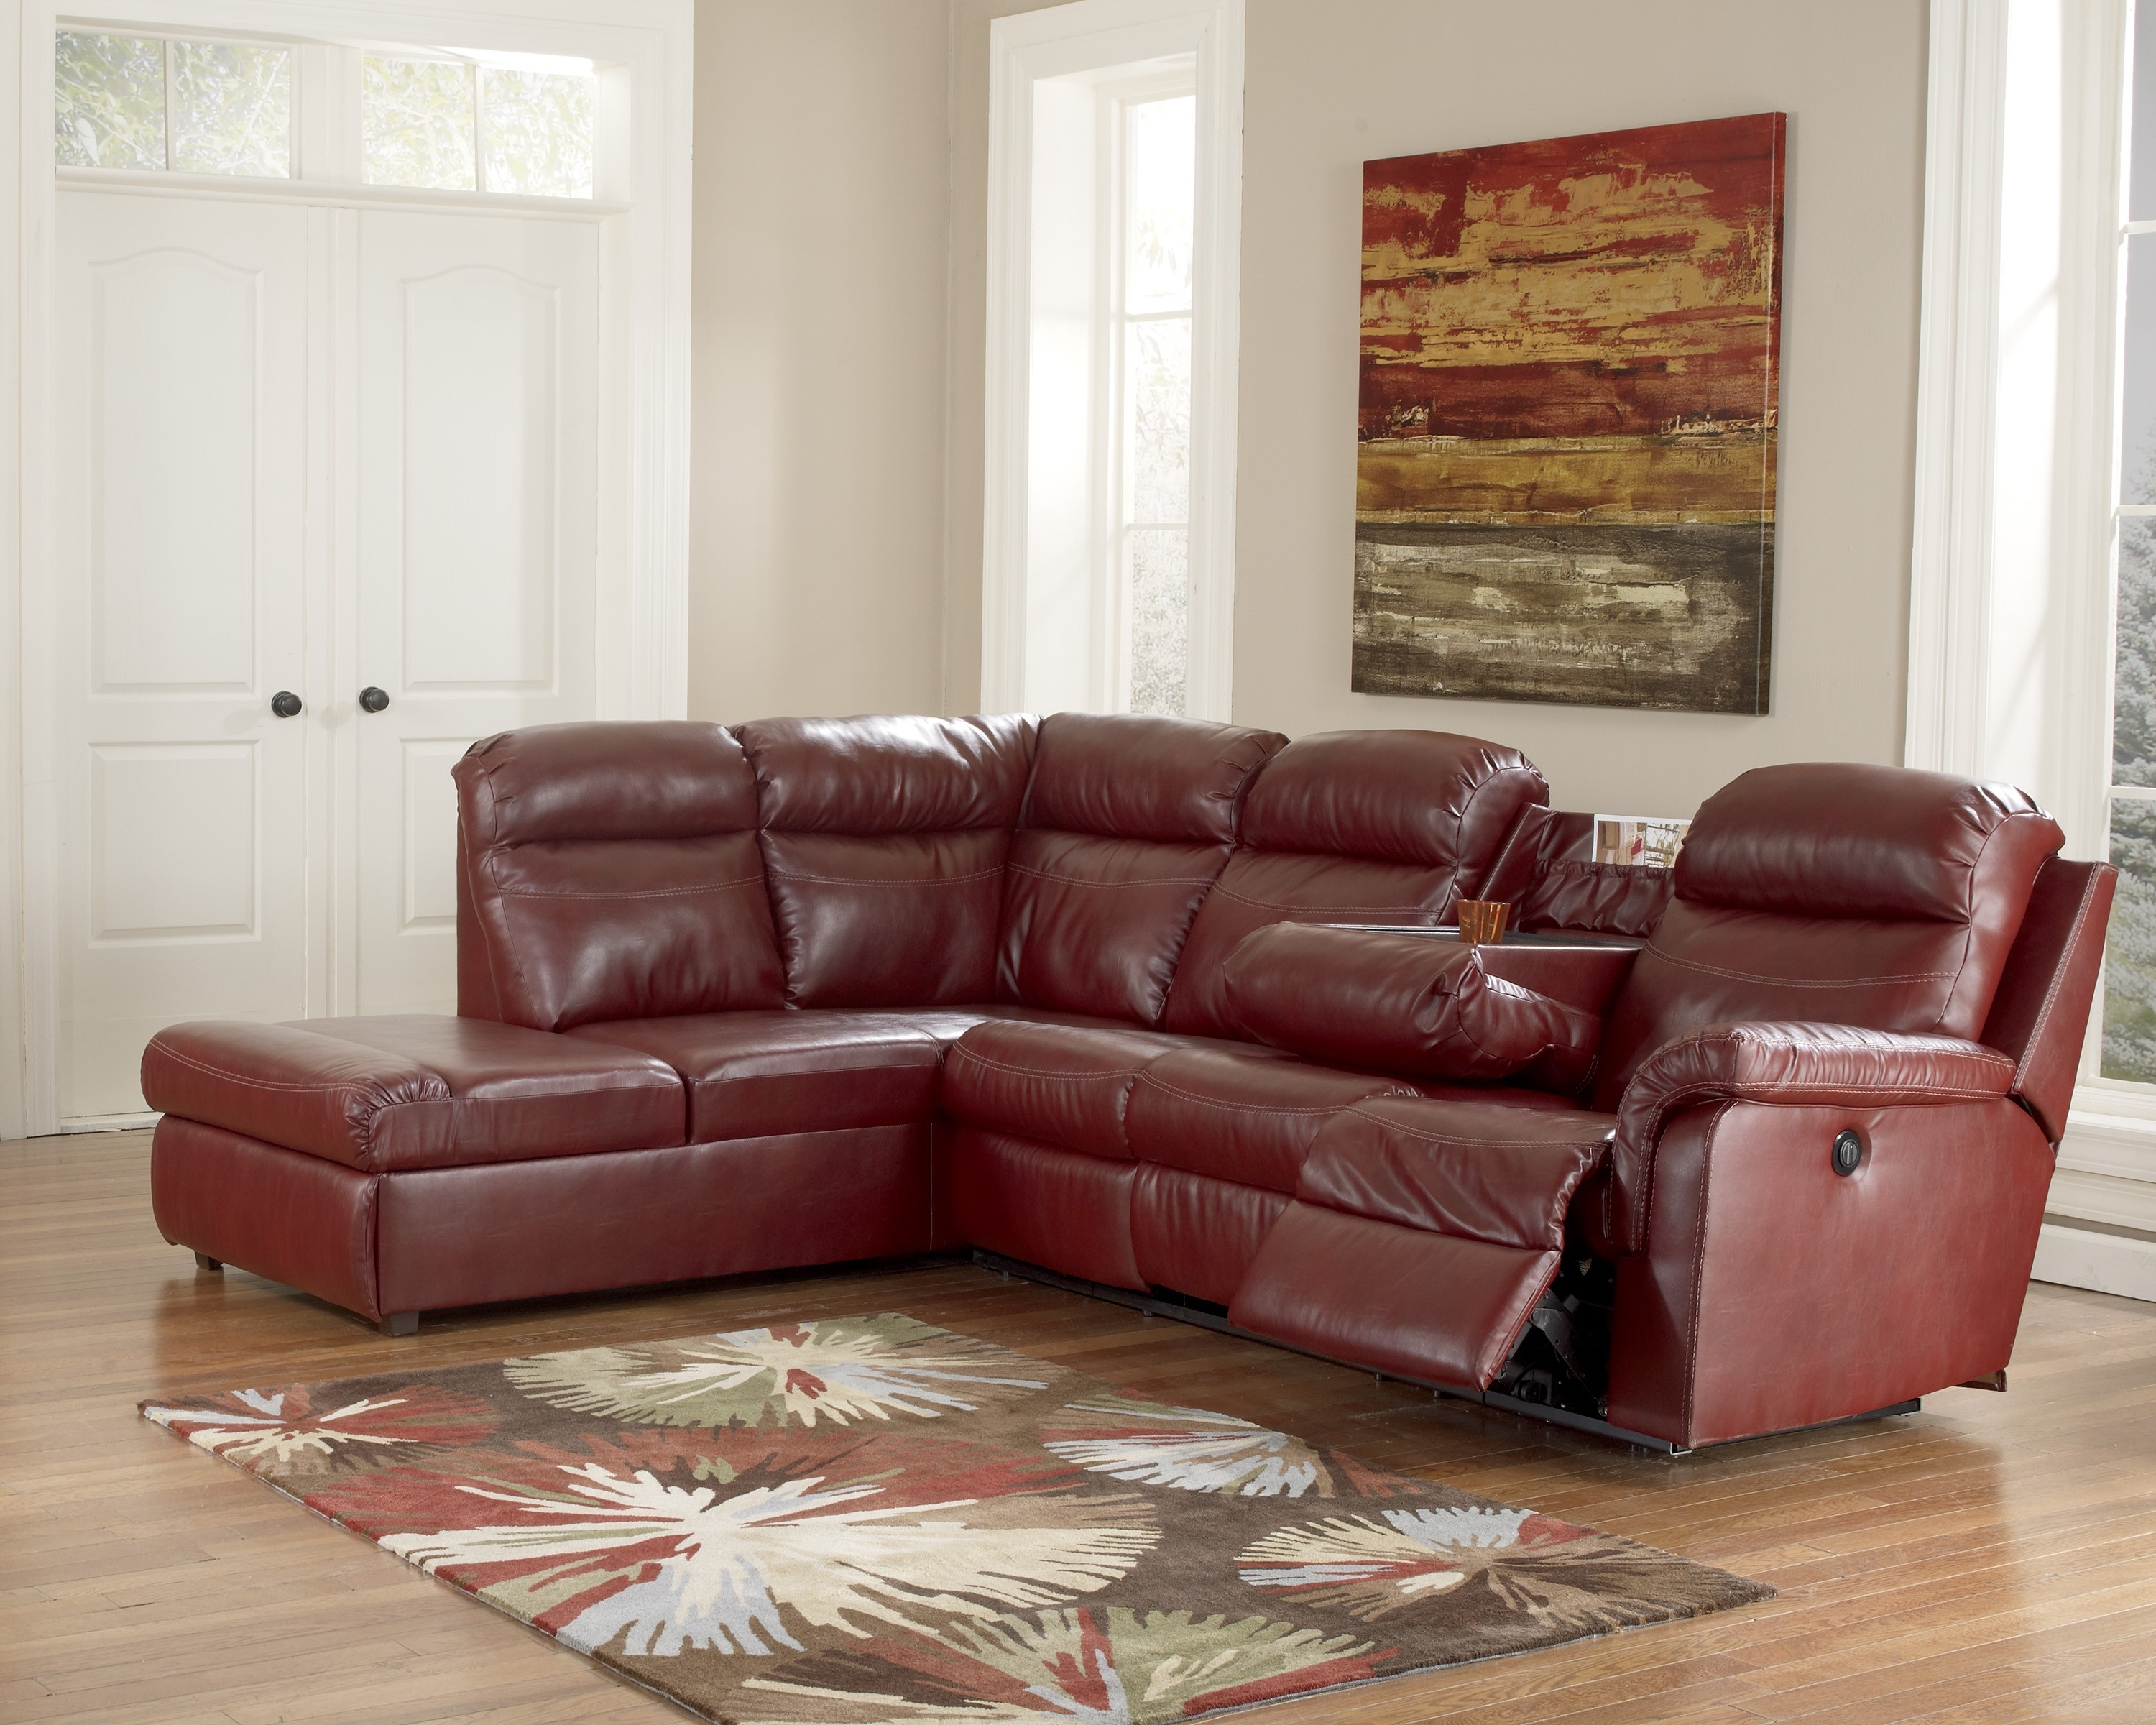 Chaise Recliner Chairs Within Famous Beautiful Leather Sectional With Chaise And Recliner Gallery (View 4 of 15)